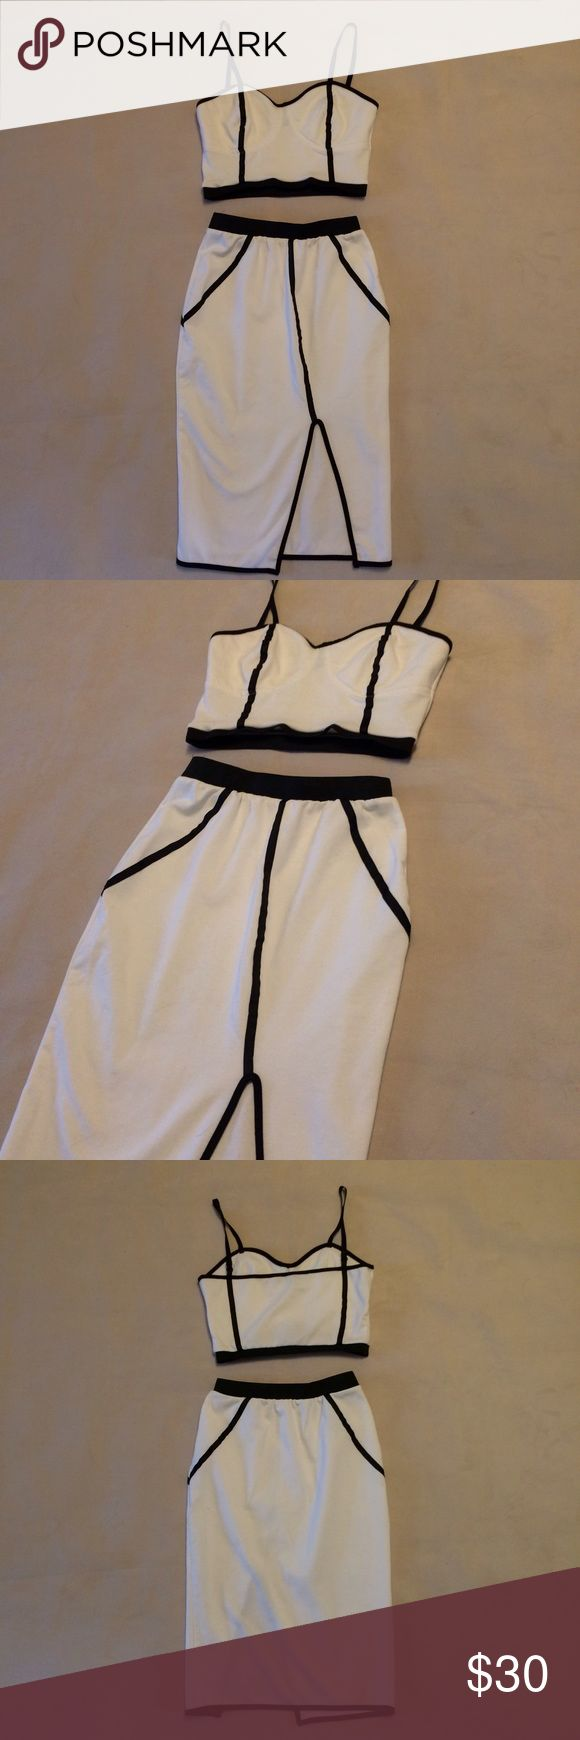 Two piece black and white set Cotton and spandex and elastic, unlined, adjustable straps--skirt can be worn frontwards or backwards--might need to wear skin toned undies as to not show too much 😉 Dresses Mini